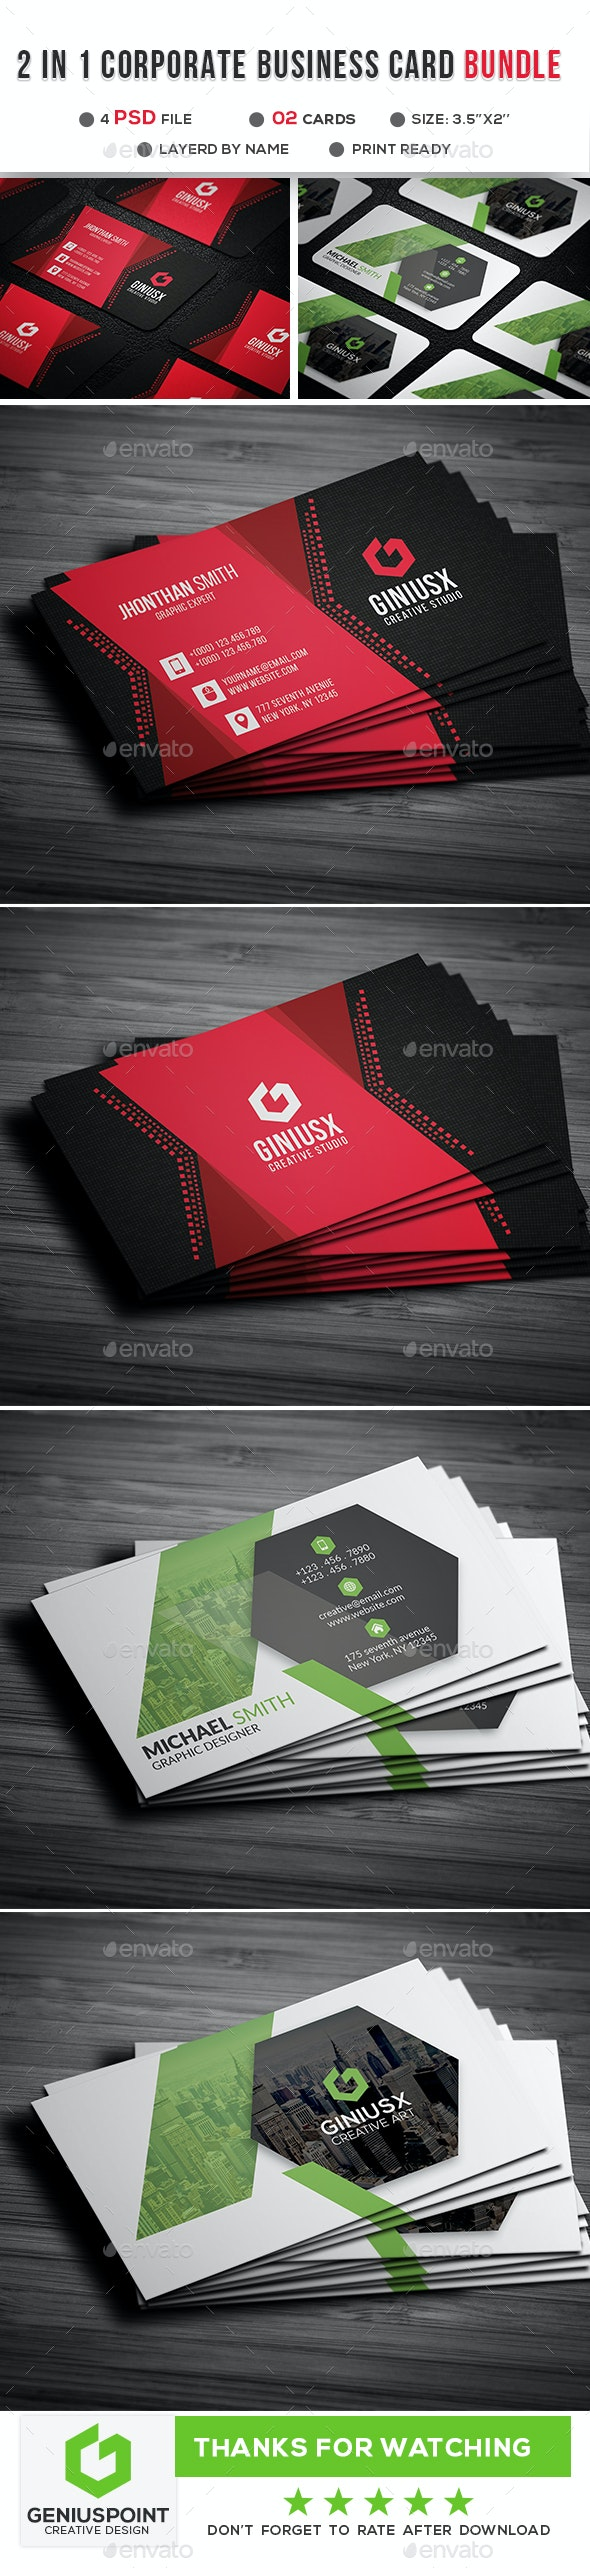 2 in 1 Corporate Business Card - Corporate Business Cards